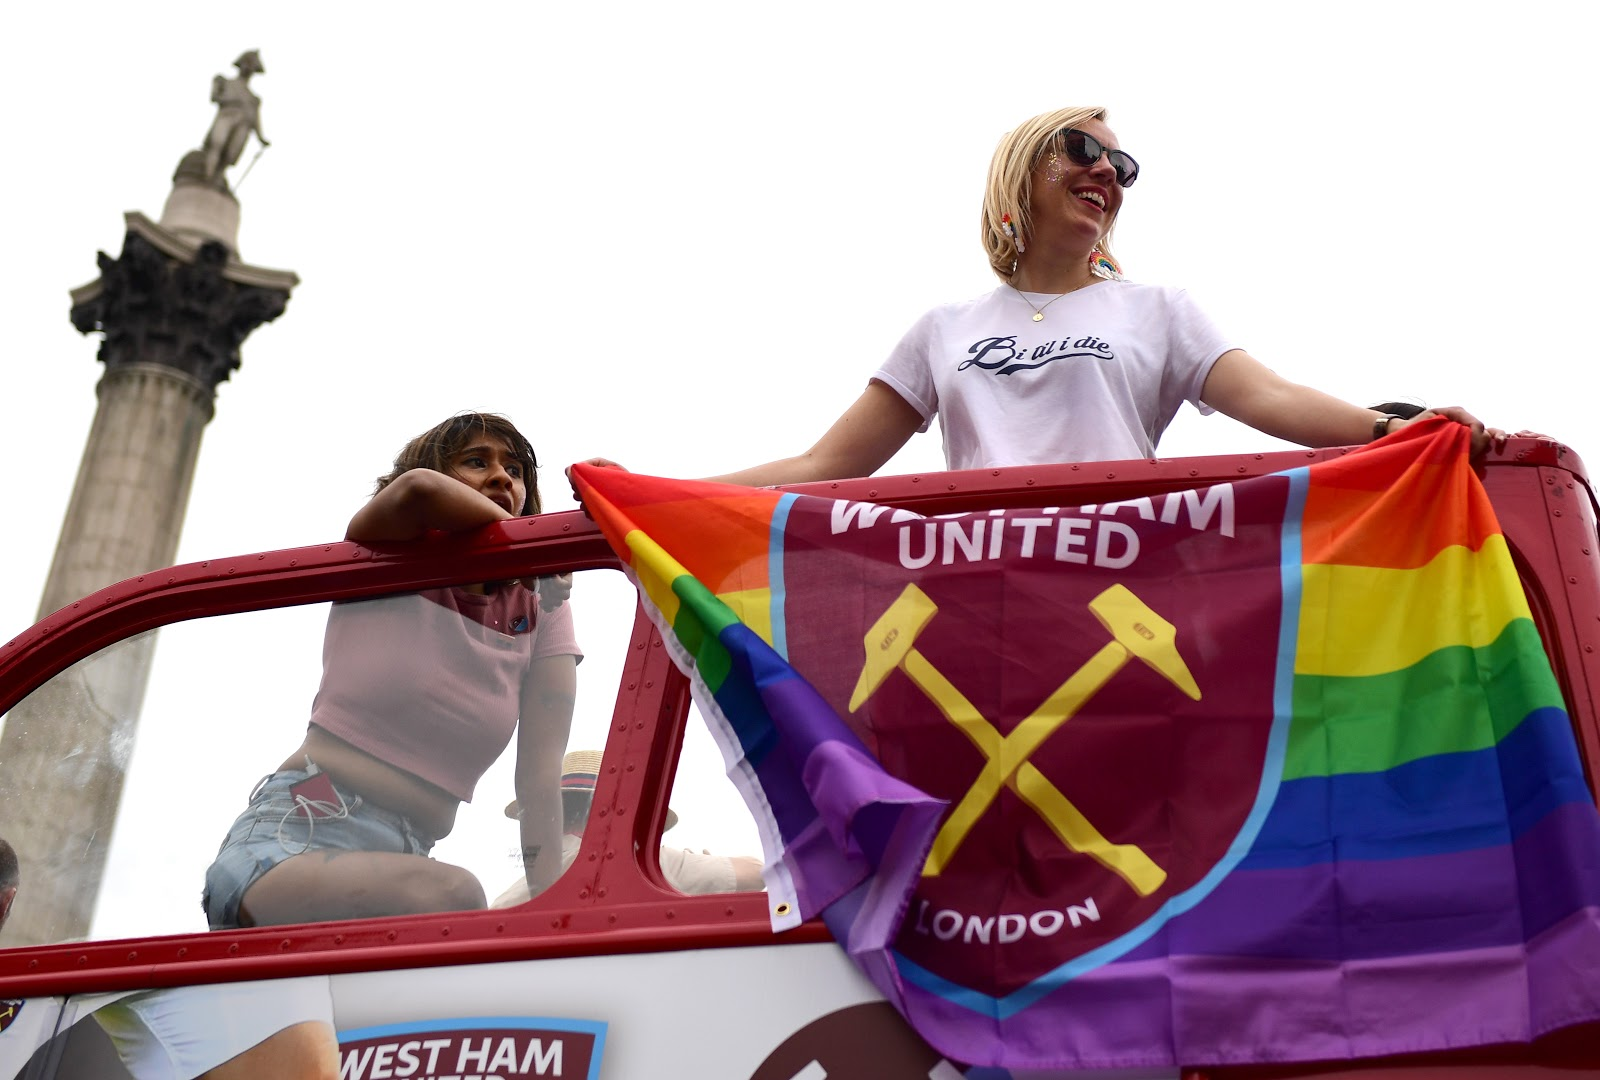 Pride supporters on a bus in London